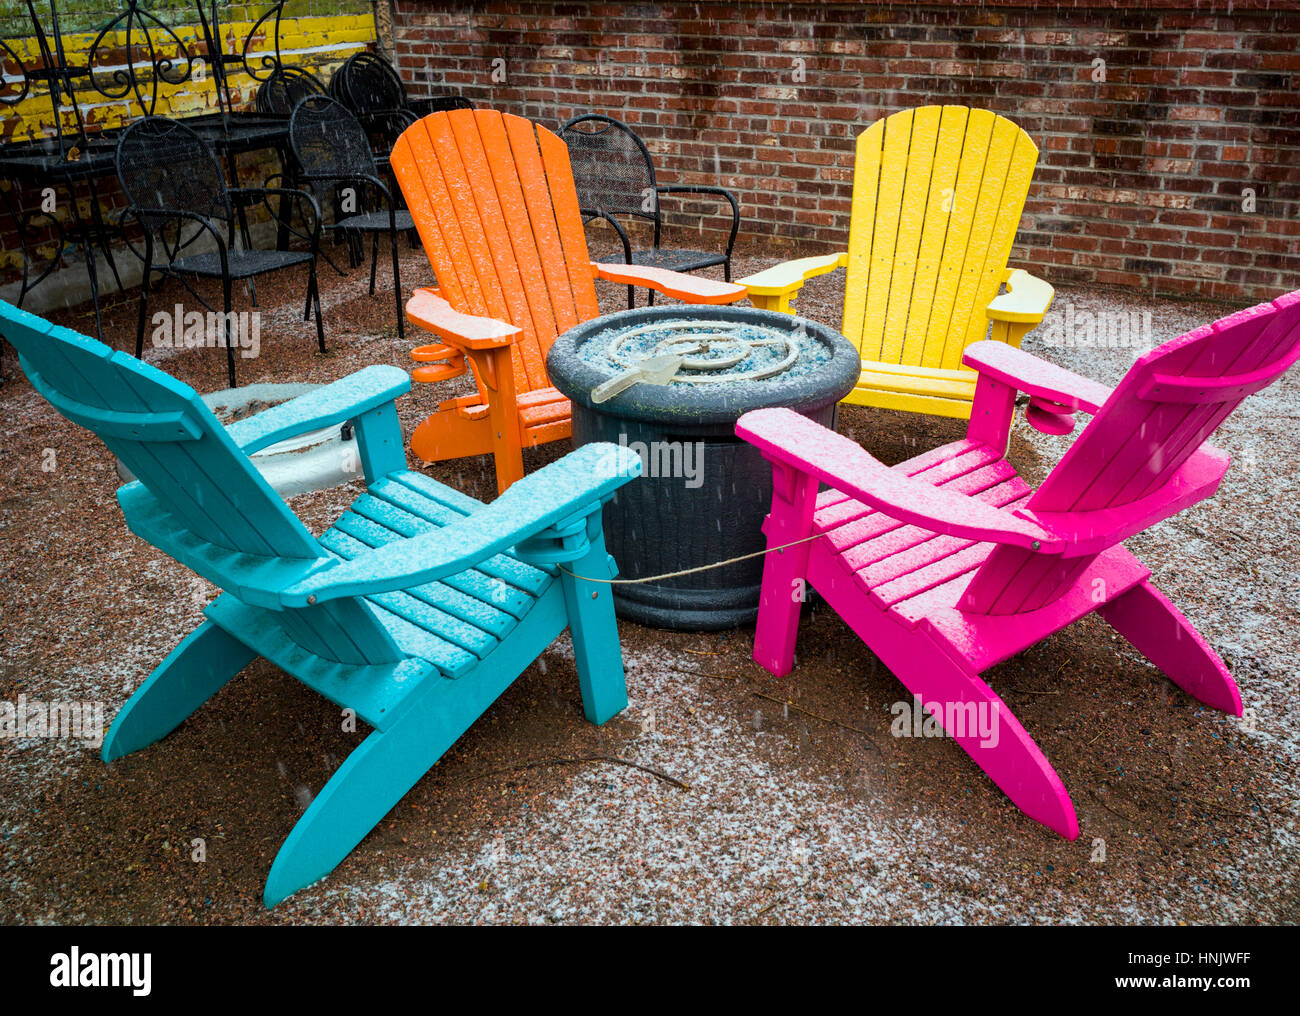 Colorful Outdoor Chairs In Snow On Patio Of Boathouse Cantina Restaurant;  Salida; Colorado: USA